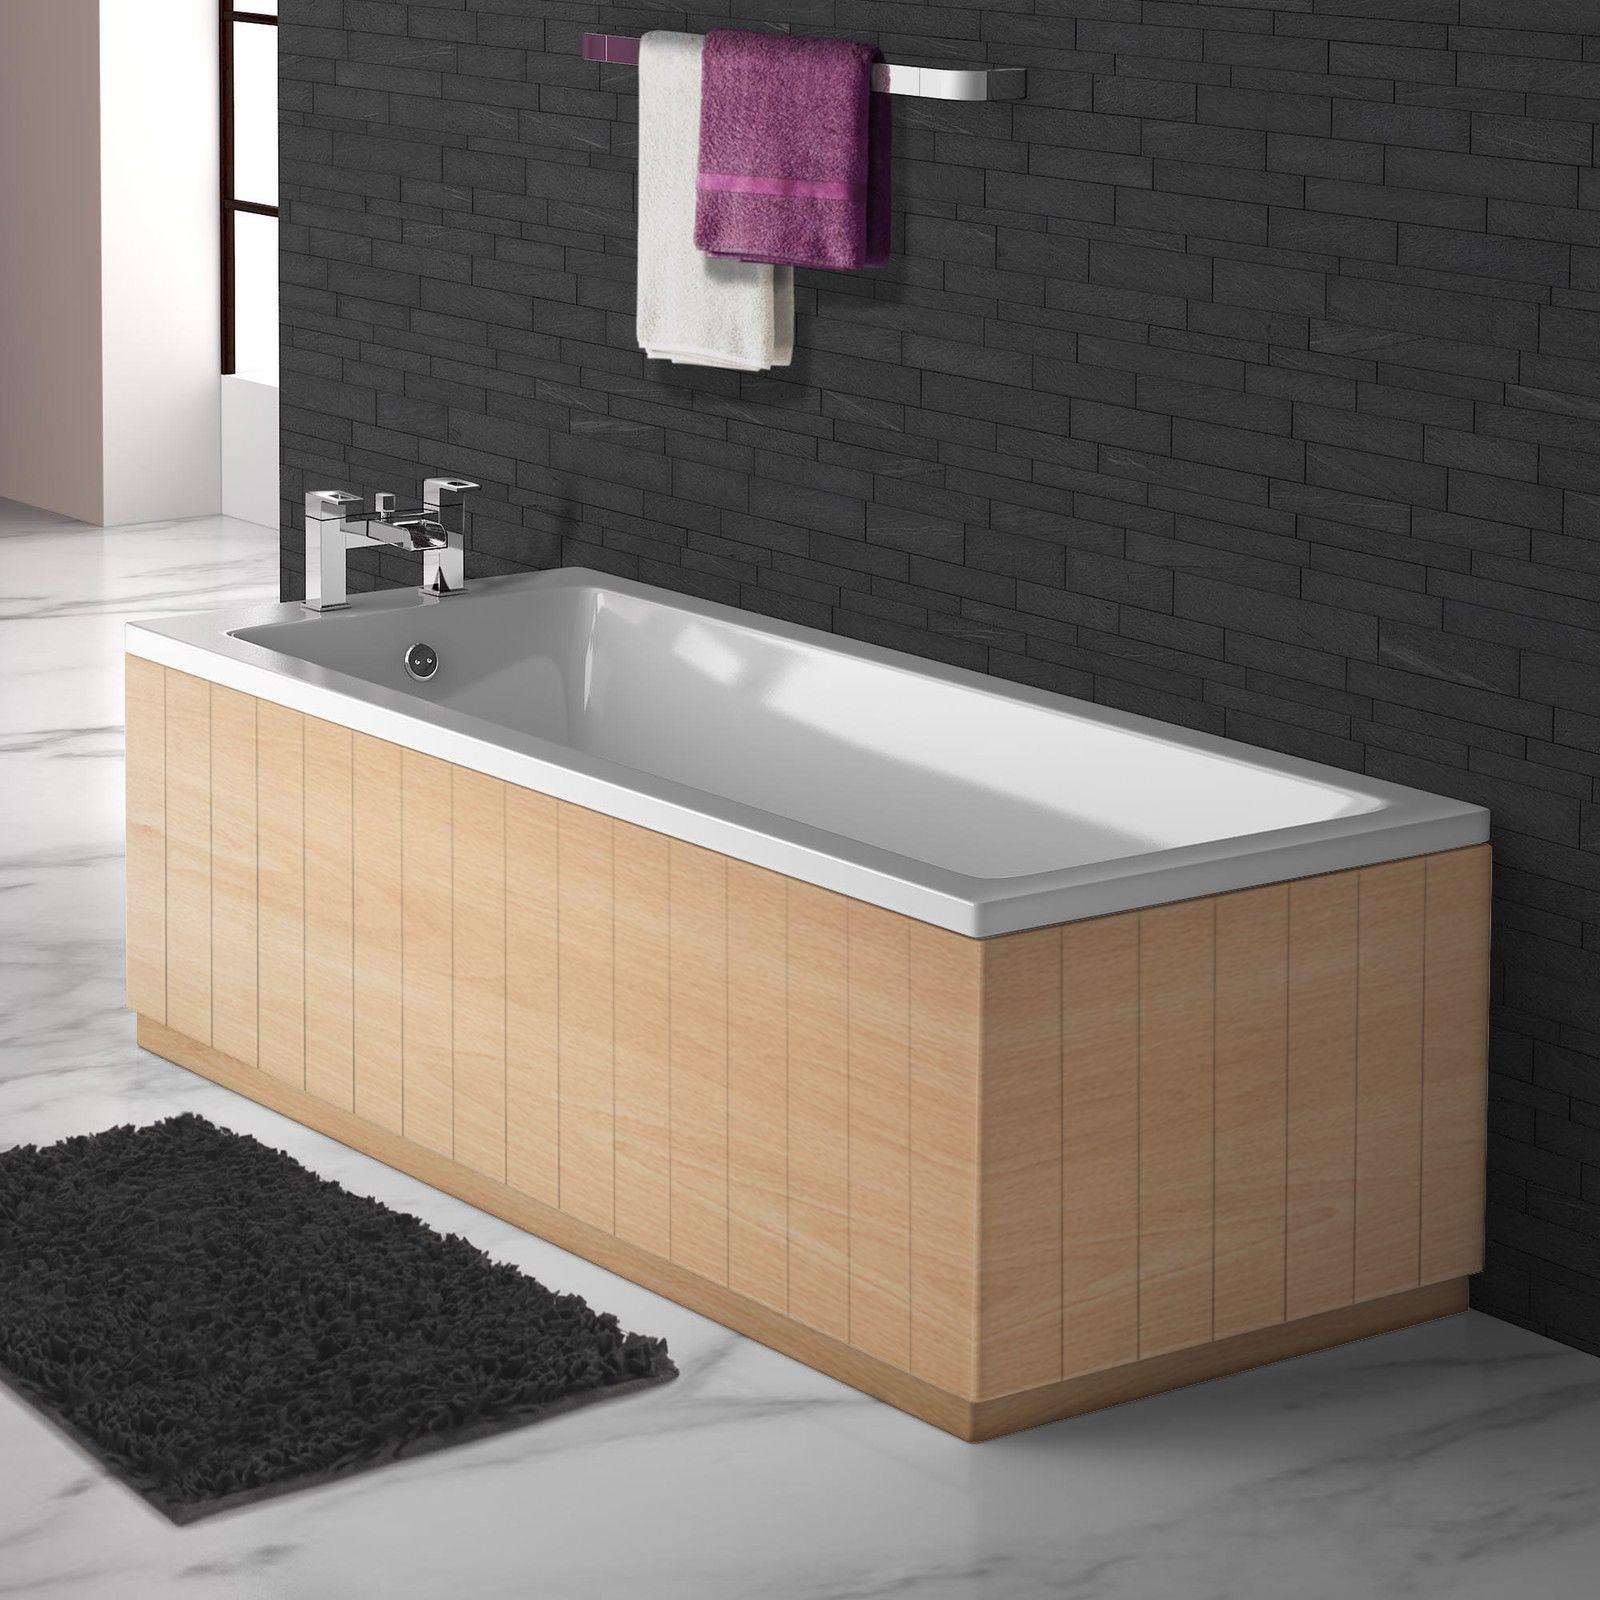 Tongue and Groove Beech 2 Piece adjustable Bath Panels